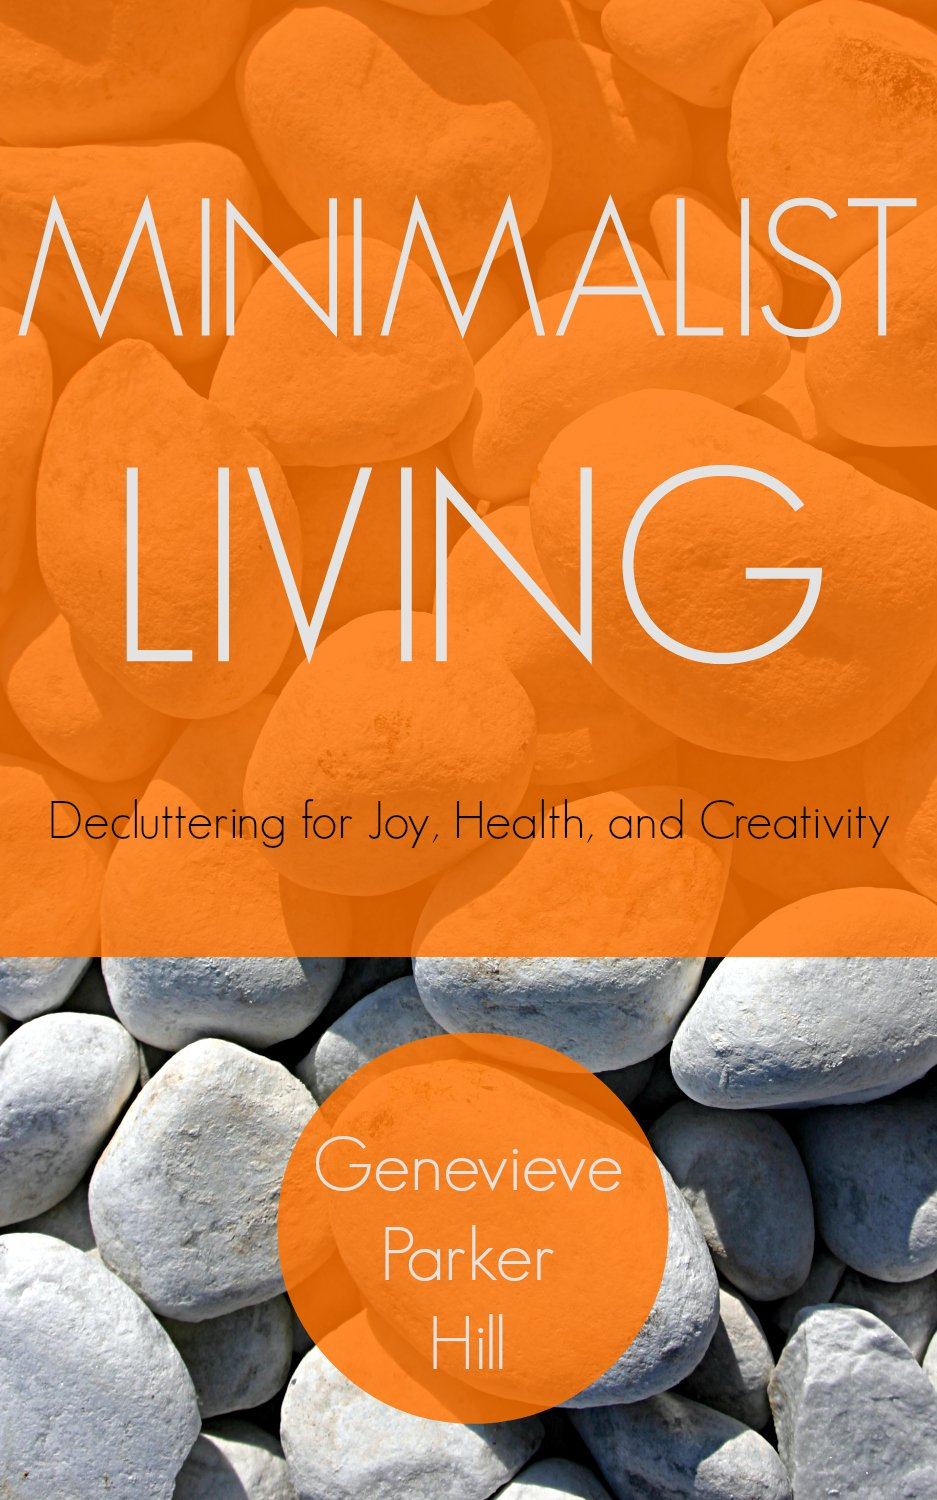 http://www.amazon.com/Minimalist-Living-Decluttering-Health-Creativity-ebook/dp/B00H9J8C64/ref=as_sl_pc_ss_til?tag=lettfromahome-20&linkCode=w01&linkId=UOITRWKXQQMU6UHX&creativeASIN=B00H9J8C64